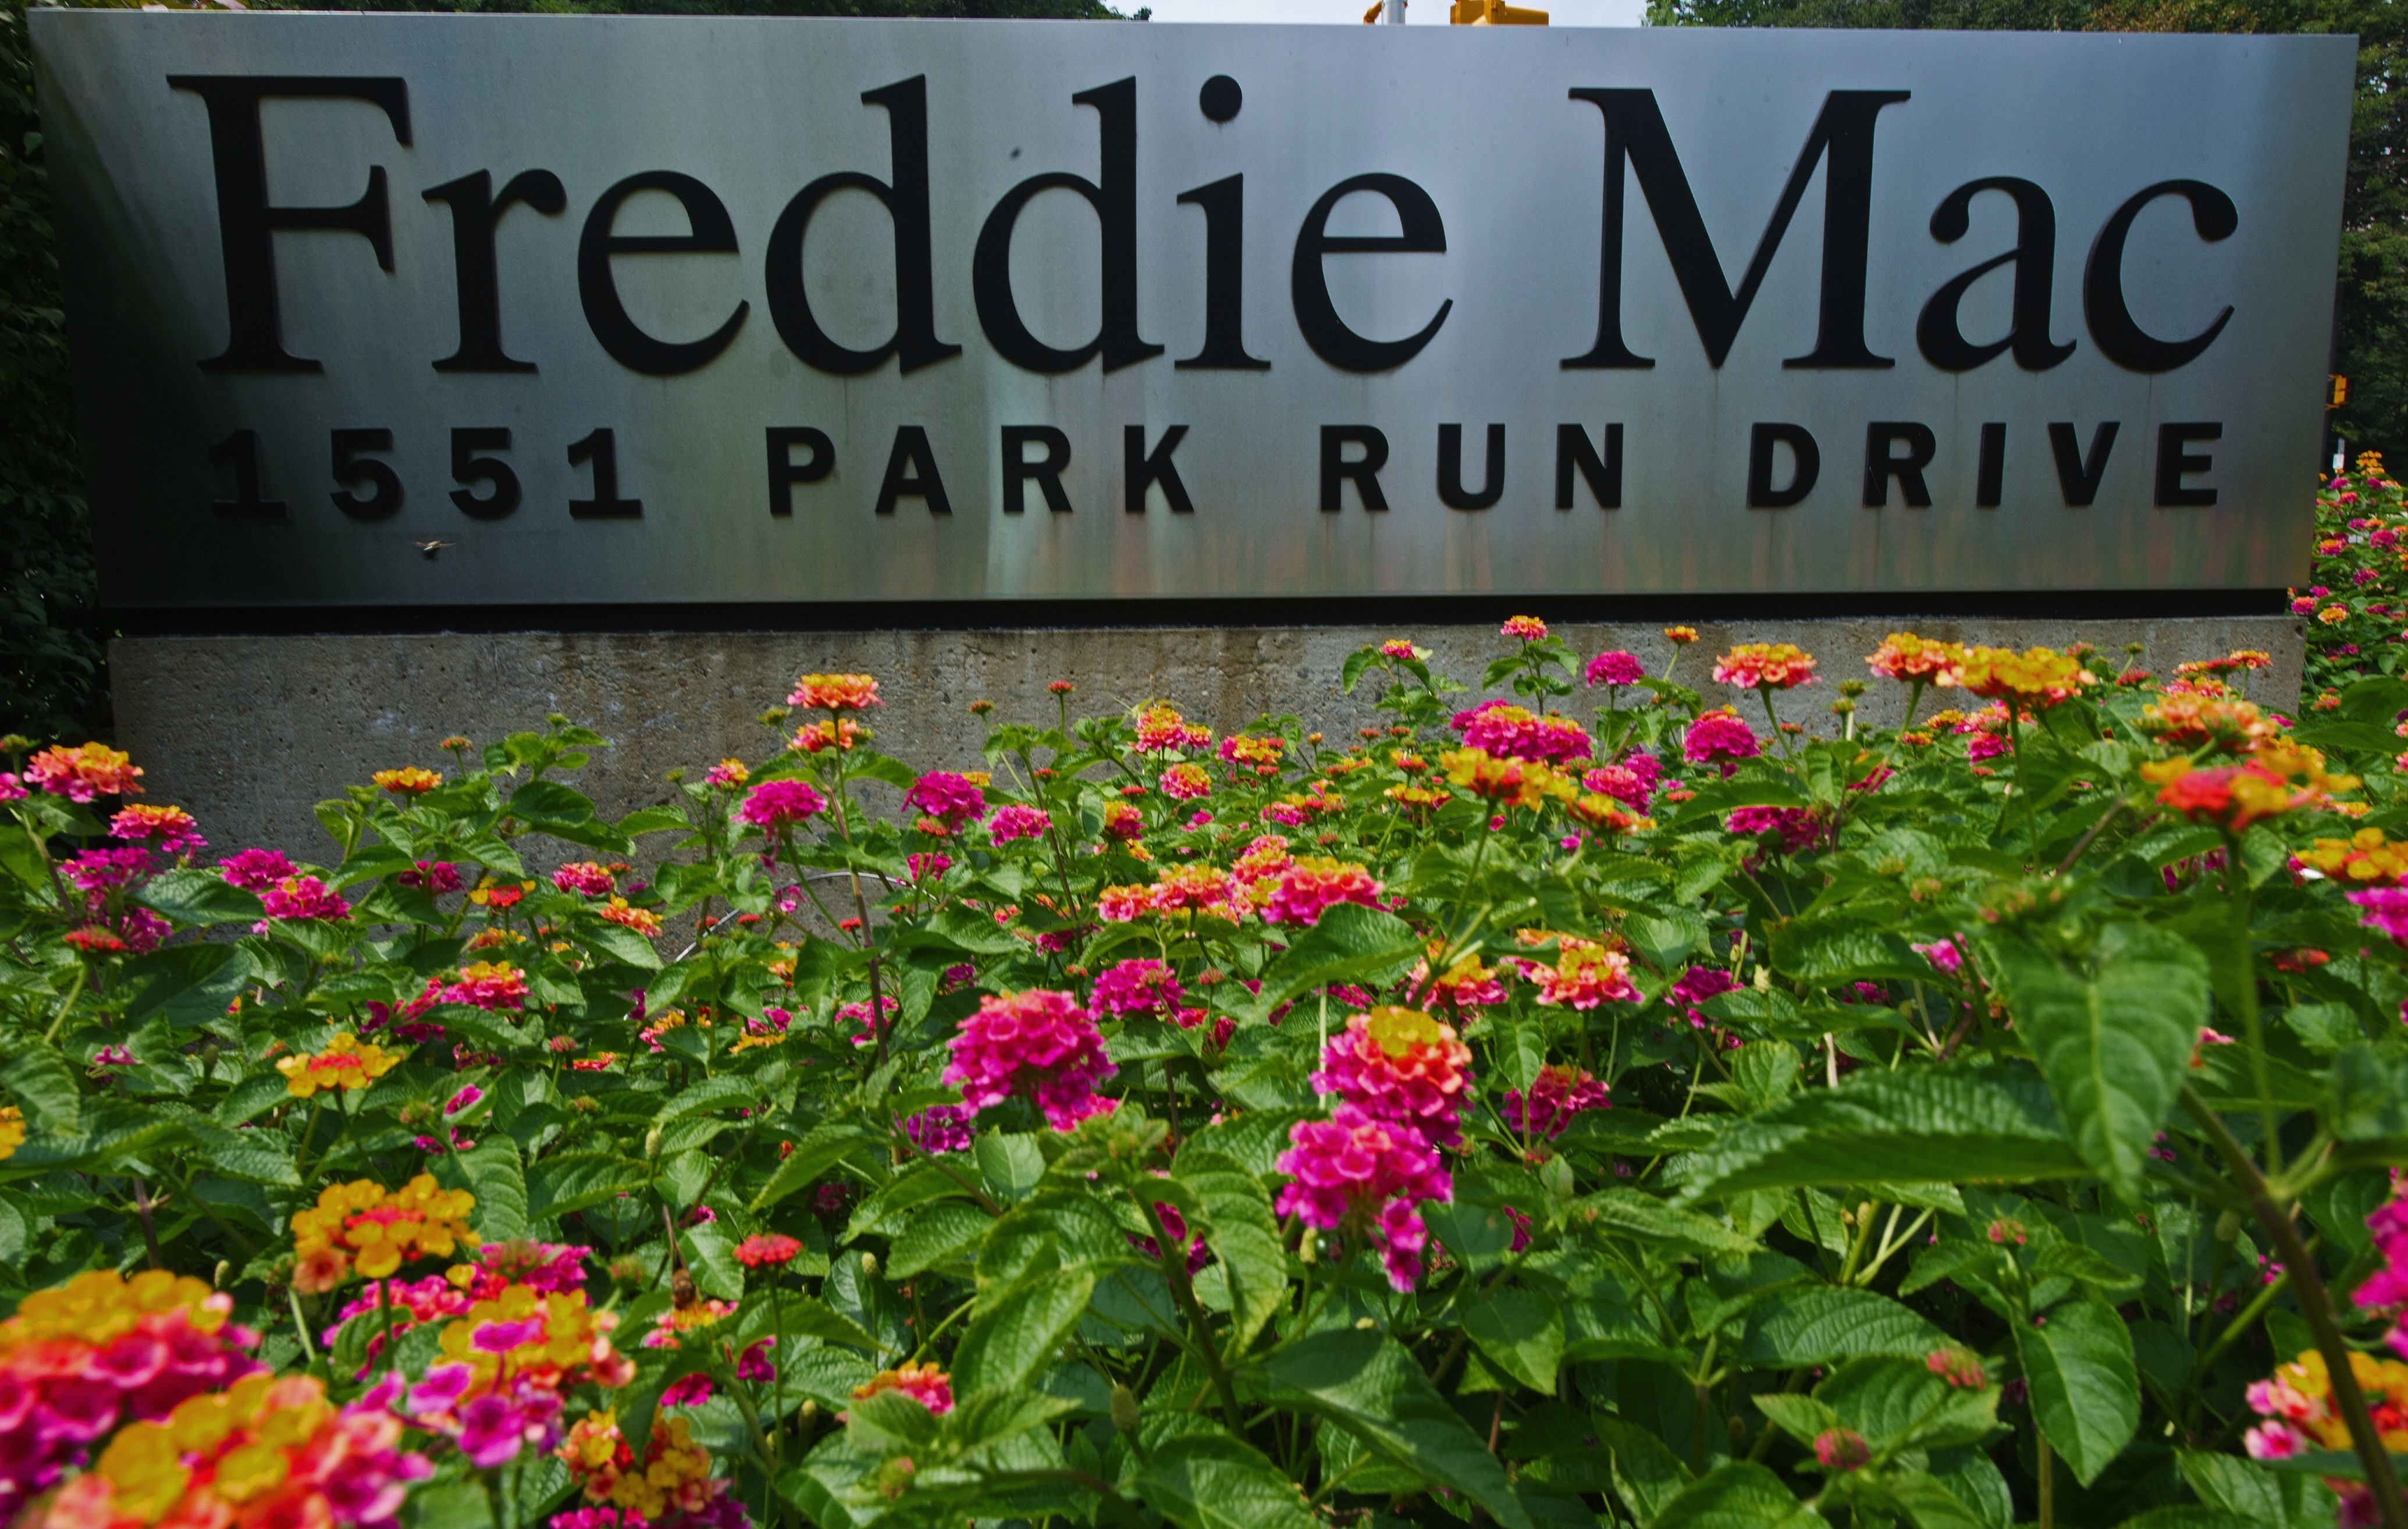 Freddie Mac offices in McLean, Virginia in August 2010.